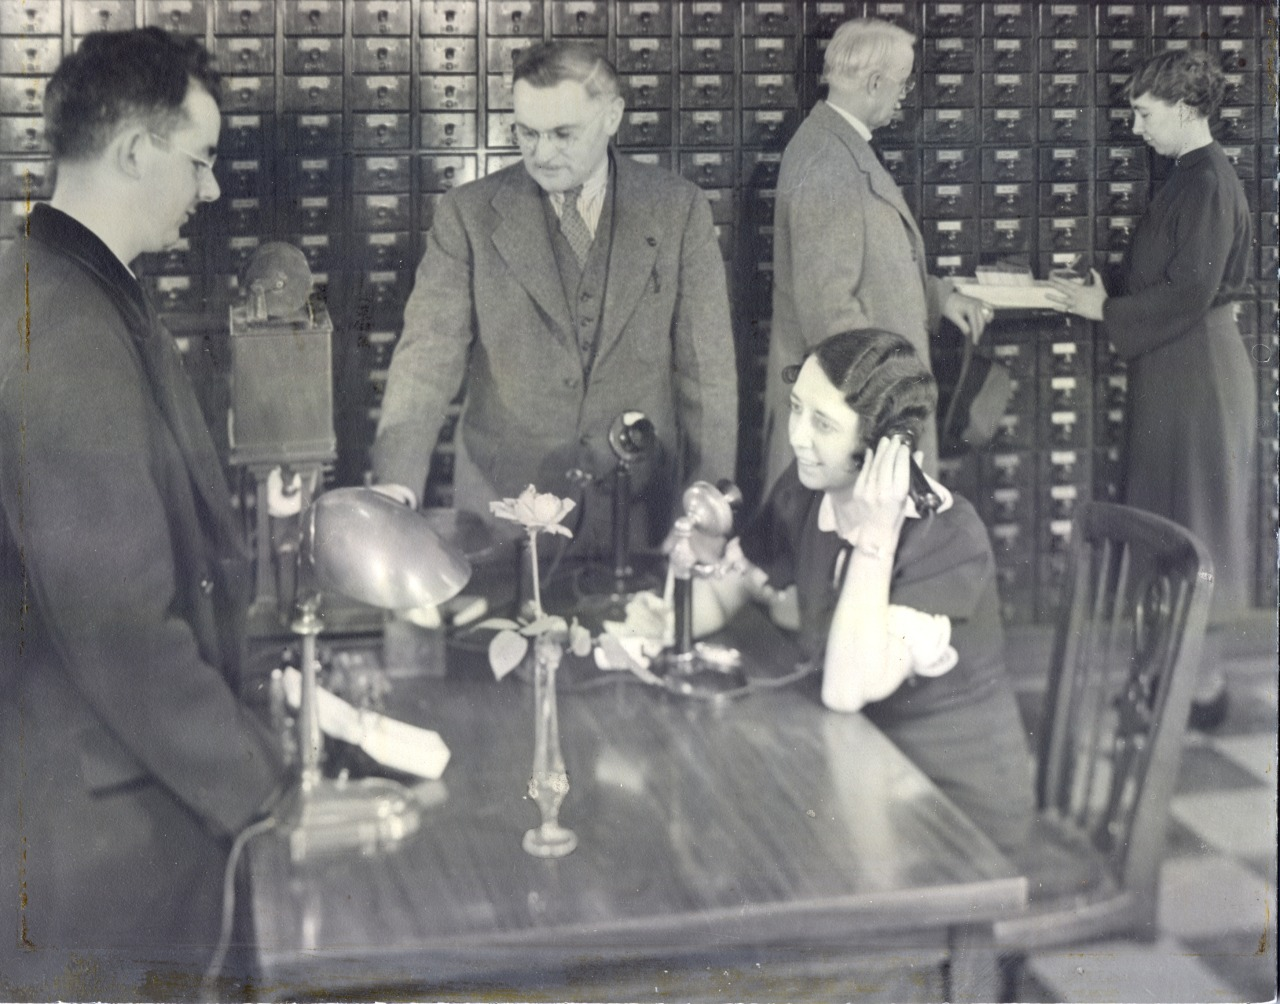 Black and white of female librarian on the phone at a table in front of 3 men and the wall-size card catalog.